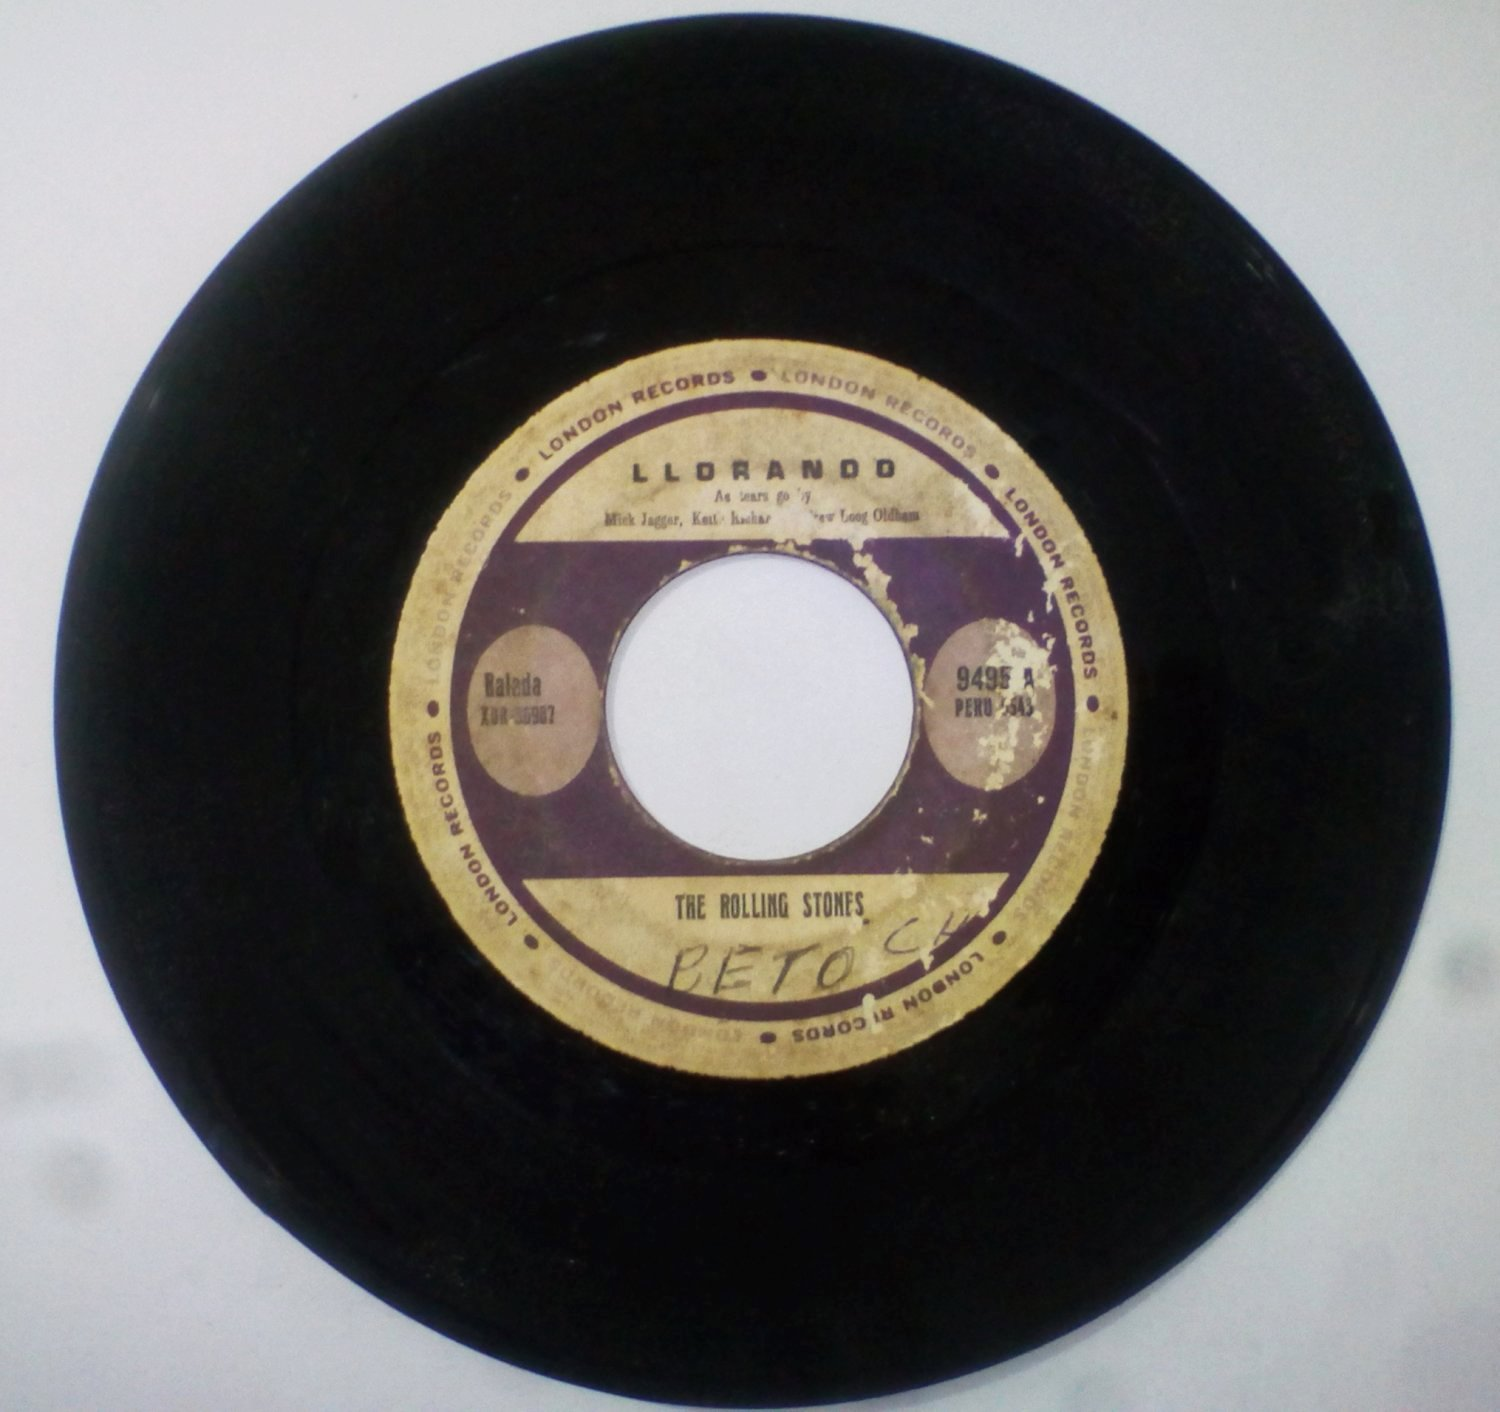 THE ROLLING STONES -AS TEARS GO BY / LLORANDO- 7'' RARE PERU EDIT